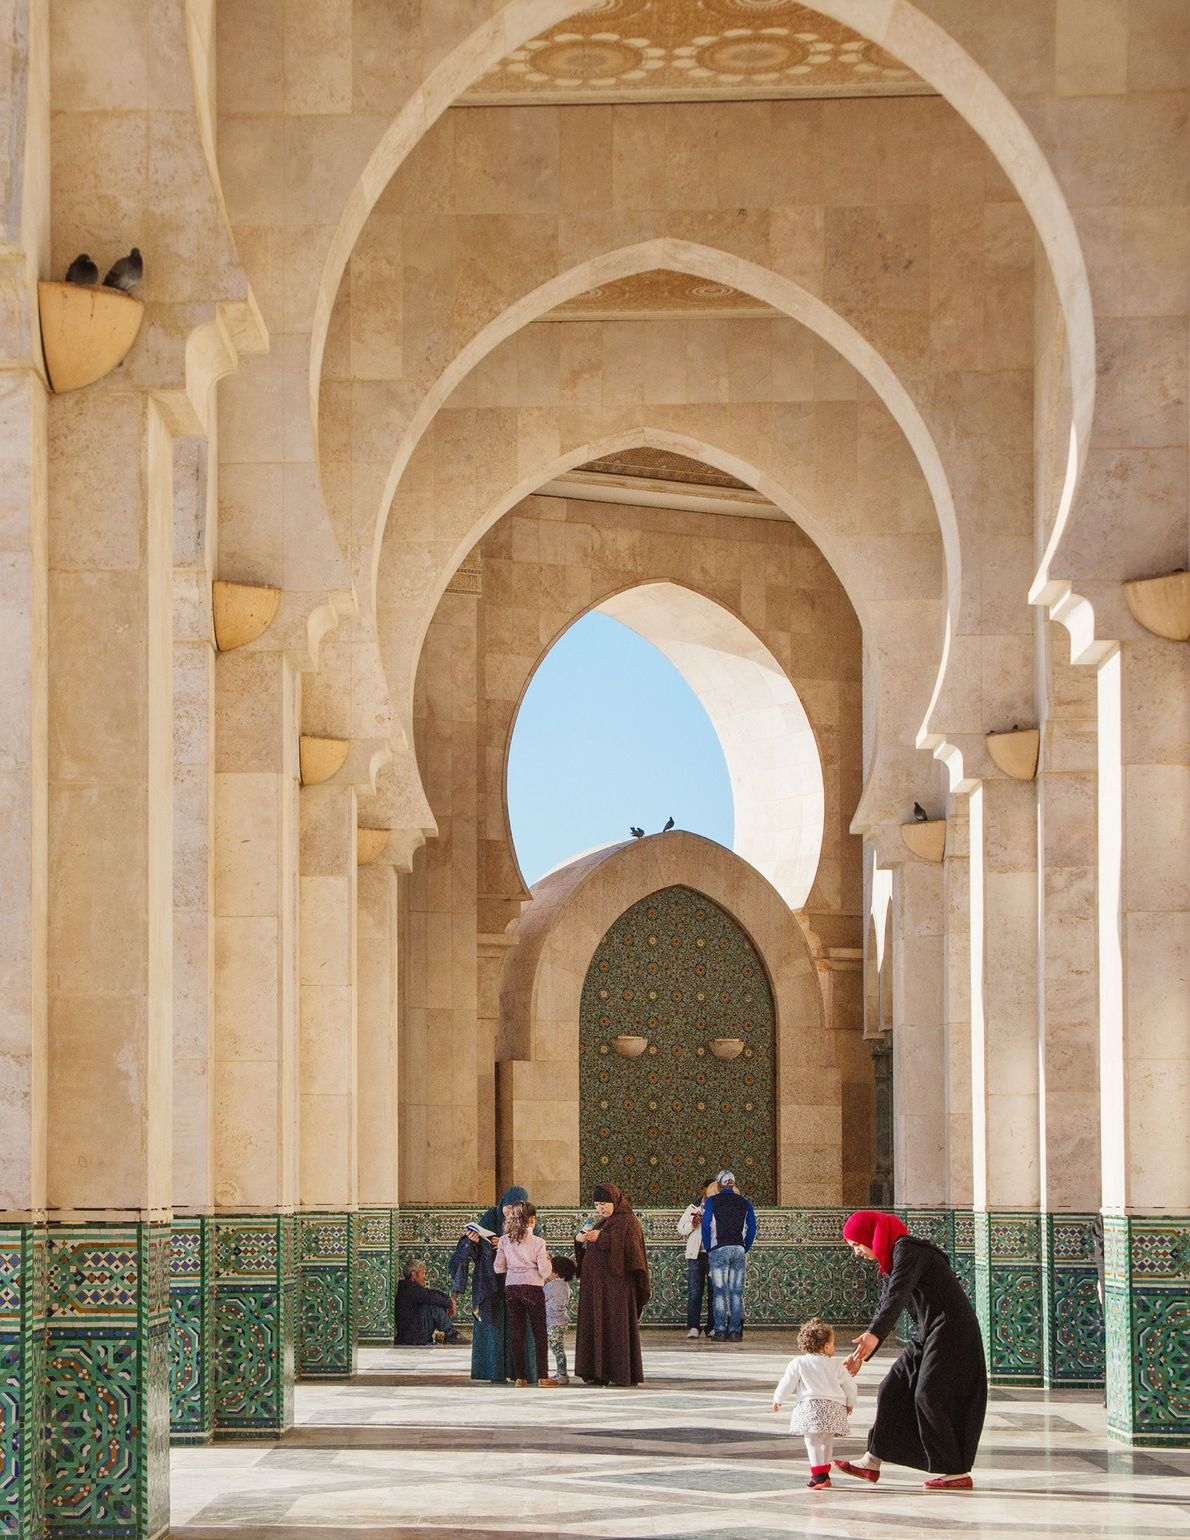 In Morocco visitors stroll through the Hassan II Mosque, one of the largest mosques in the ...